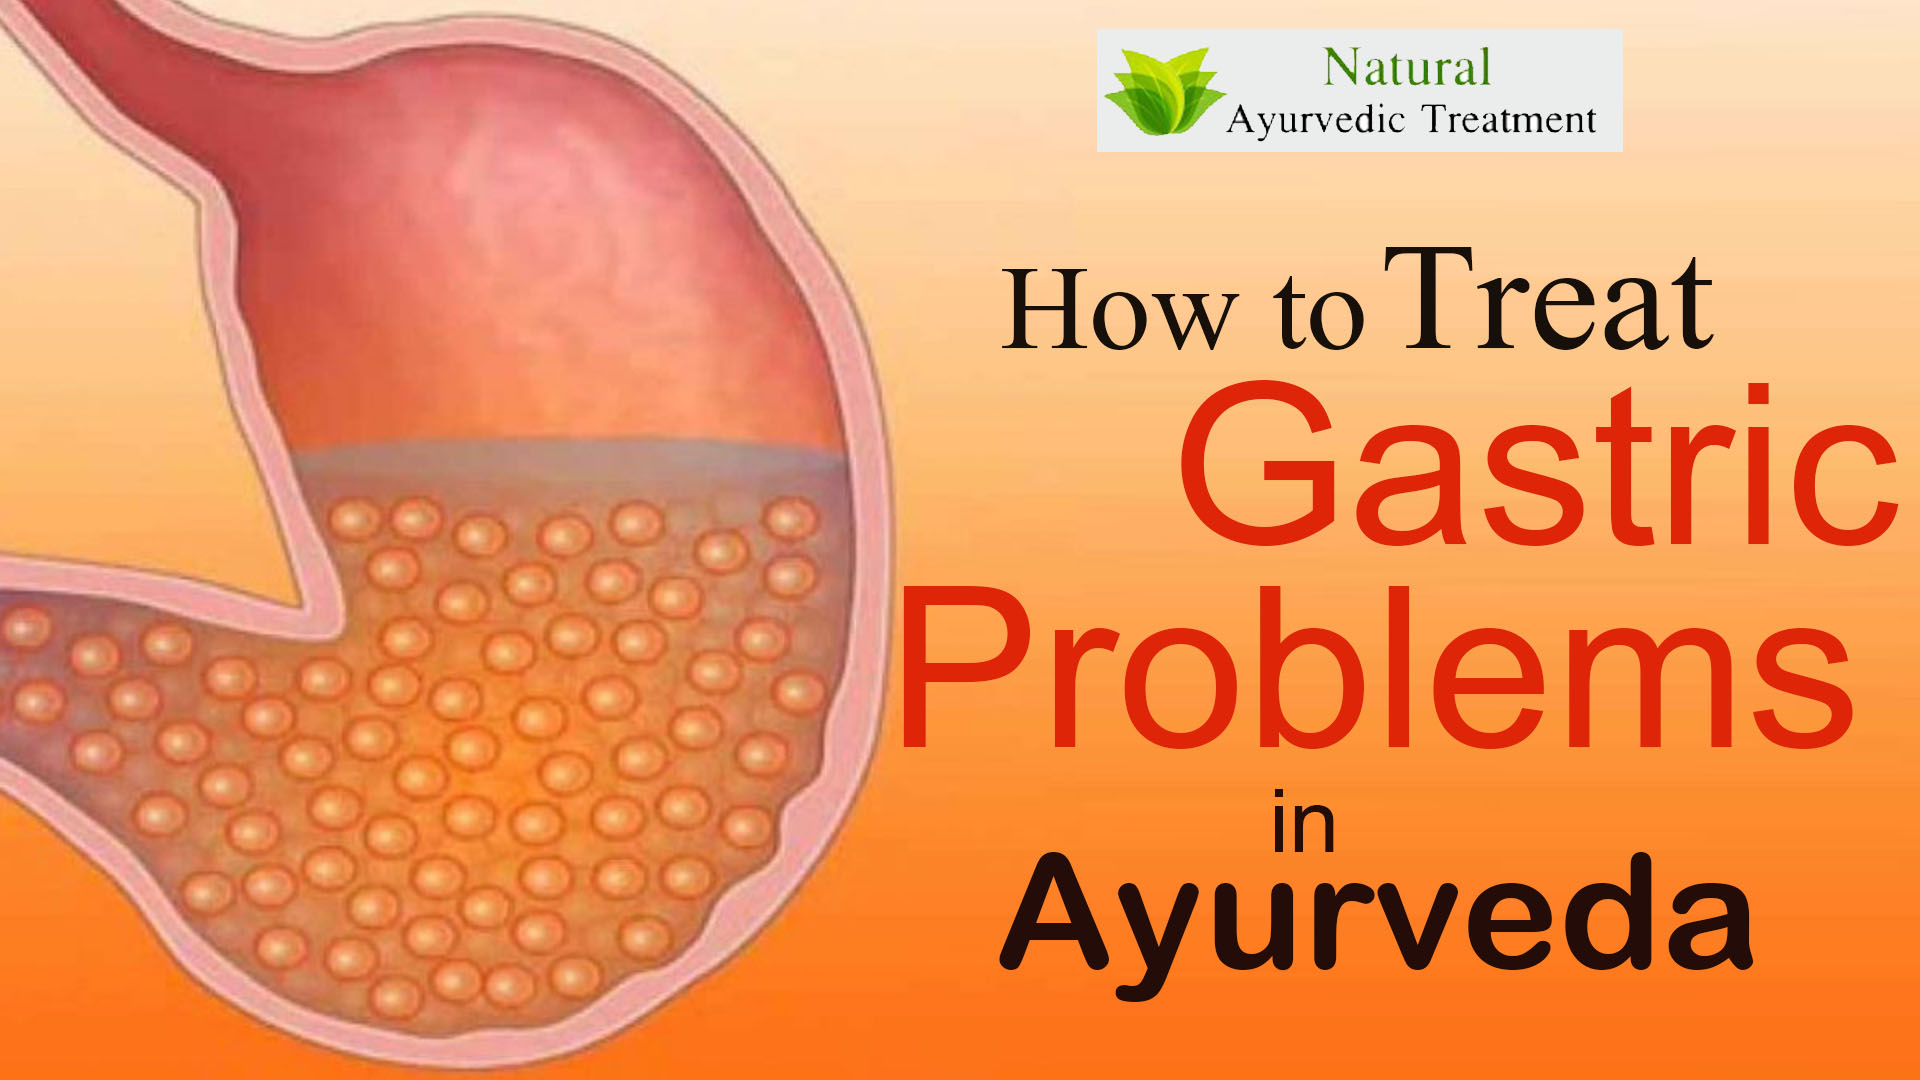 How to Treat Gastric Problems in Ayurveda?